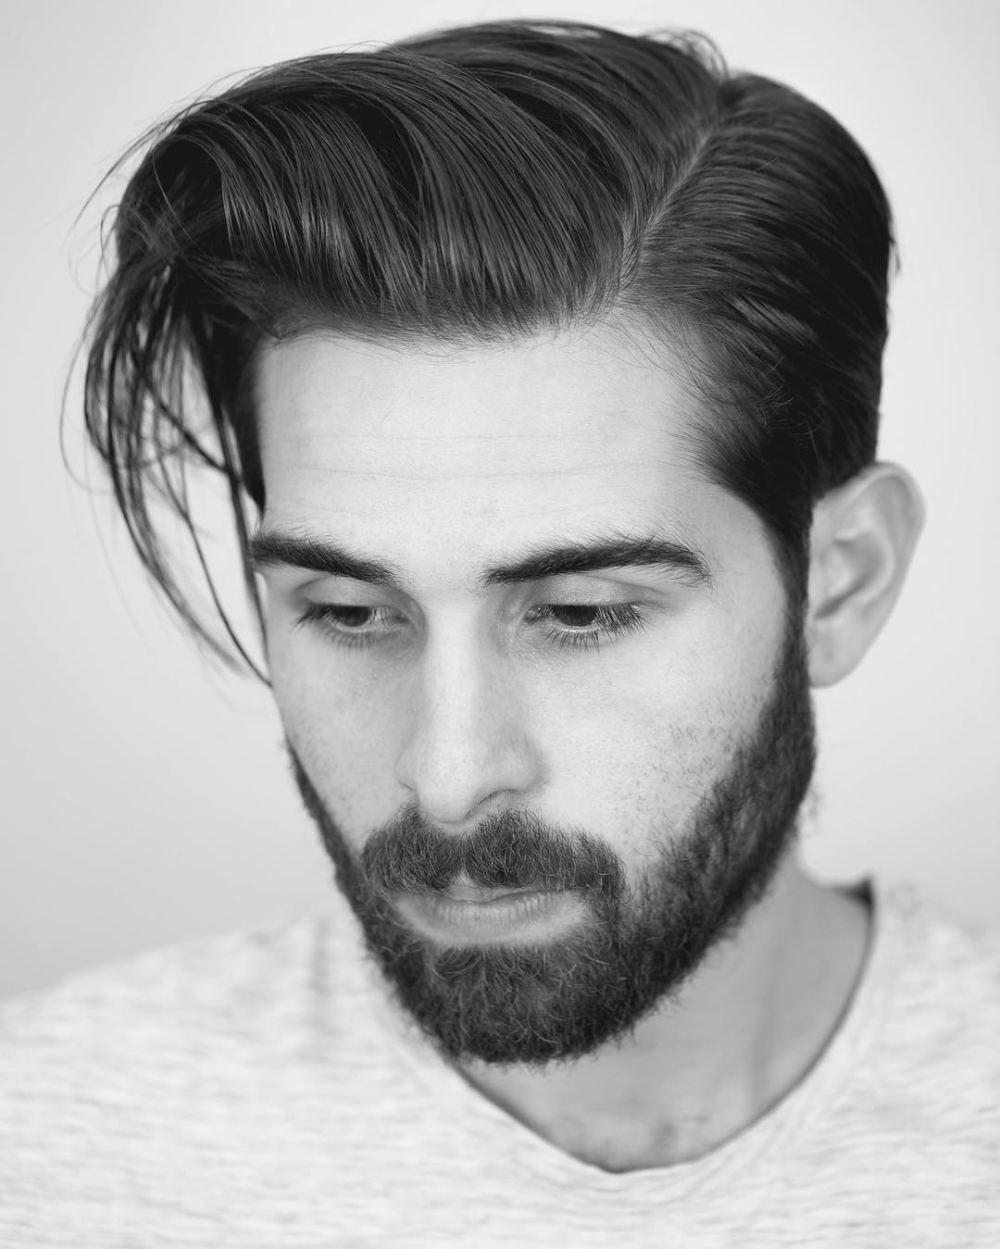 How To Grow Your Hair Out Men S Tutorial In 2020 Growing Your Hair Out Long Hair Styles Men Growing Out Hair